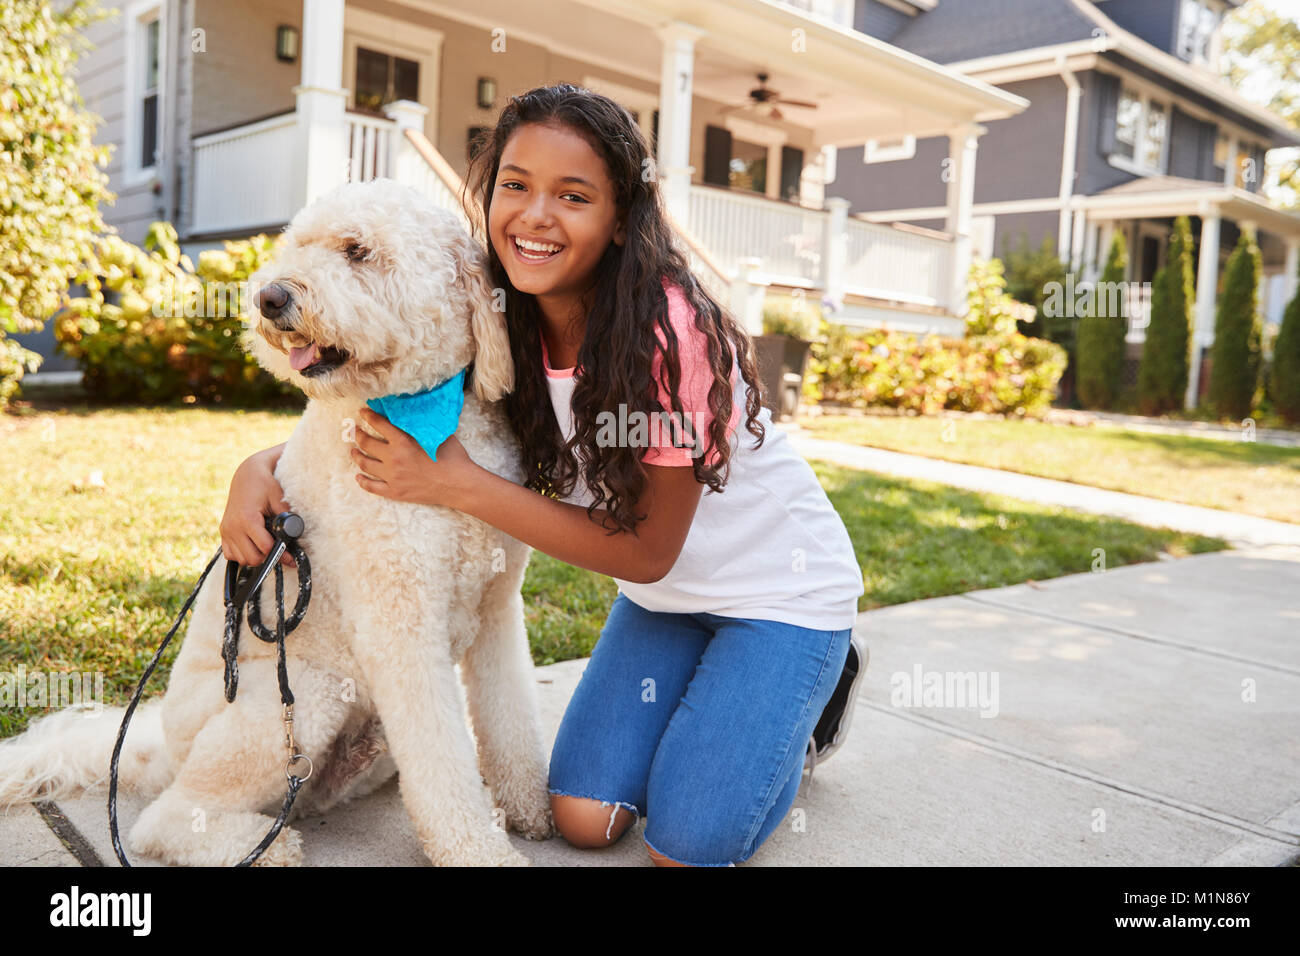 Portrait Of Girl With Dog On Suburban Street - Stock Image